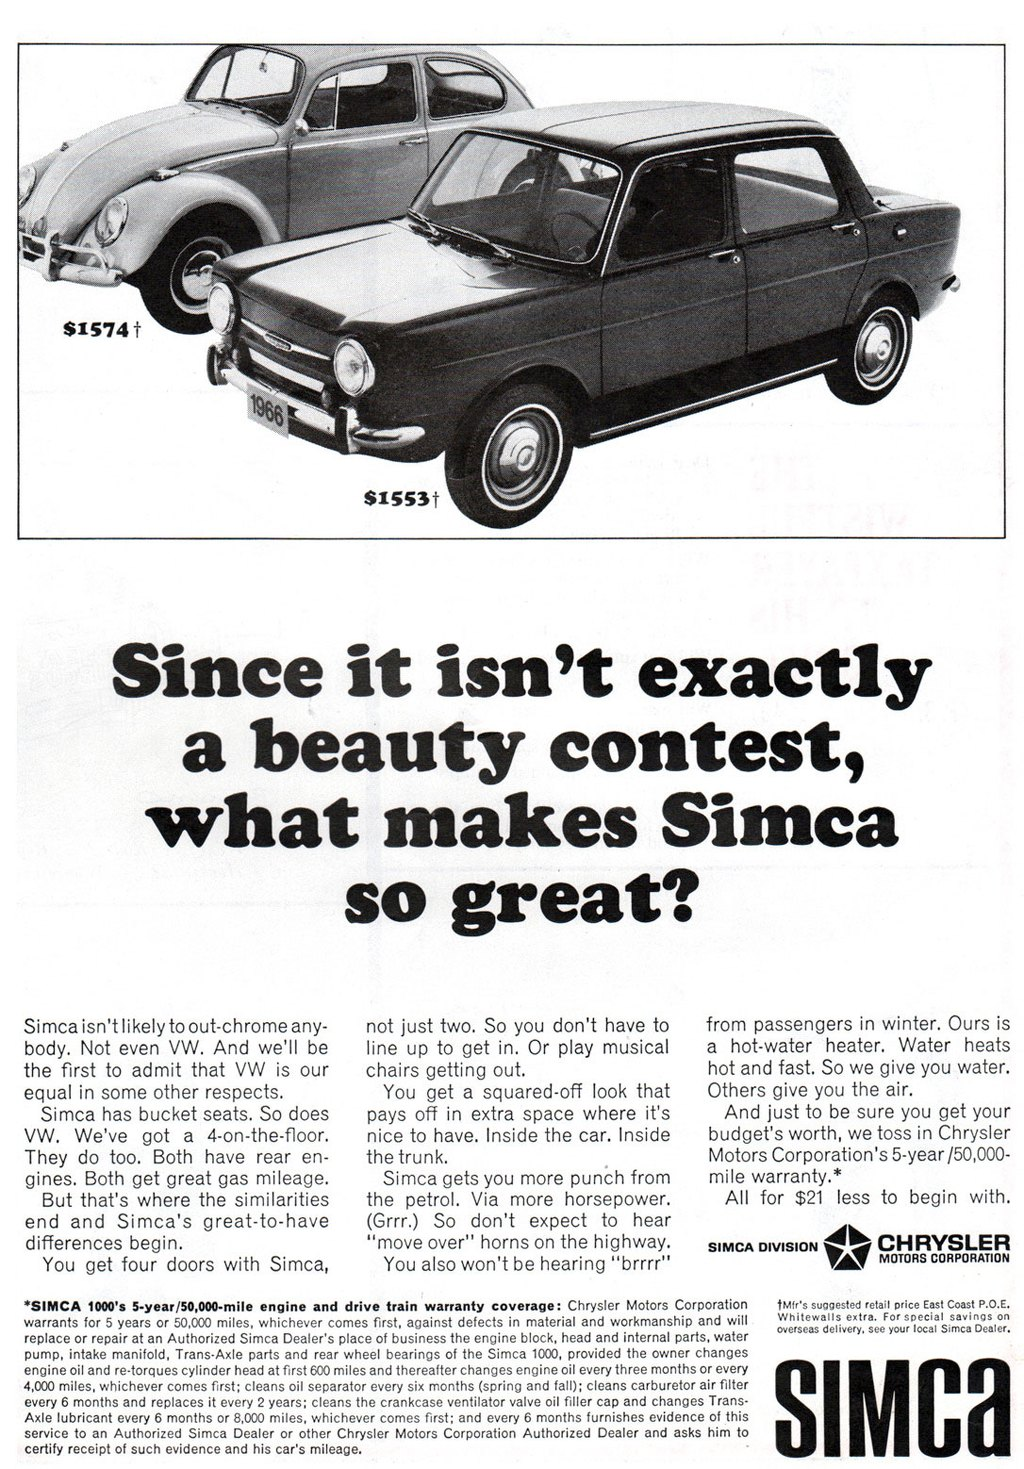 Since it isn't exactly a beauty contest, what makes Simca so great? Simca isn't likely to out-chrome any-body. Not even VW. And we'll be the first to admit that VW is our equal in some other respects. Simca has bucket seats. So does VW. We've got a 4-on-the-floor. They do too. Both have rear en-gines. Both get great gas mileage. But that's where the similarities end and Simca's great-to-have differences begin. You get four doors with Simca,  not just two. So you don't have to line up to get in. Or play musical chairs getting out. You get a squared-off look that pays off in extra space where it's nice to have. Inside the car. Inside the trunk. Simca gets you more punch from the petrol. Via more horsepower. (Grrr.) So don't expect to hear ''move over'' horns on the highway. You also won't be hearing ''brrrr''  from passengers in winter. Ours is a hot-water heater. Water heats hot and fast. So we give you water. Others give you the air. And just to be sure you get your budget's worth, we toss in Chrysler Motors Corporation's 5-year/50,000-mile warranty.* All for $21 less to begin with. SIMCA DIVISIONif CHRYSLER MOTORS CORPORATION  *SIMCA 1000's 5-year/50,000-mile engine and drive train warranty coverage: Chrysler Motors Corporation warrants for 5 years or 50,000 miles, whichever comes first, against defects in material and workmanship and will replace or repair at an Authorized Simca Dealer's place of business the engine block, head and internal parts, water Pump, intake manifold, Trans•Axle parts and rear wheel bearings of the Simca 1000, provided the owner changes engine oil and re•torques cylinder head at first 600 miles and thereafter changes engine oil every three months or every 4,000 miles, whichever comes first; cleans oil separator every six months (spring and fall); cleans carburetor air filter every 6 months and replaces it every 2 years; cleans the crankcase ventilator valve oil filler cap and changes Trans-Axle lubricant every 6 months or 8,000 miles, whichever comes first; and every 6 months furnishes evidence of this service to an Authorized Simca Dealer or other Chrysler Motors Corporation Authorized Dealer and asks him to certify receipt of such evidence and his car's mileage.  tMWS suggested retail price East Coast P.O.E. Whitewalls extra. For special savings on overseas delivery, see your local Simca Dealer. SIMCA